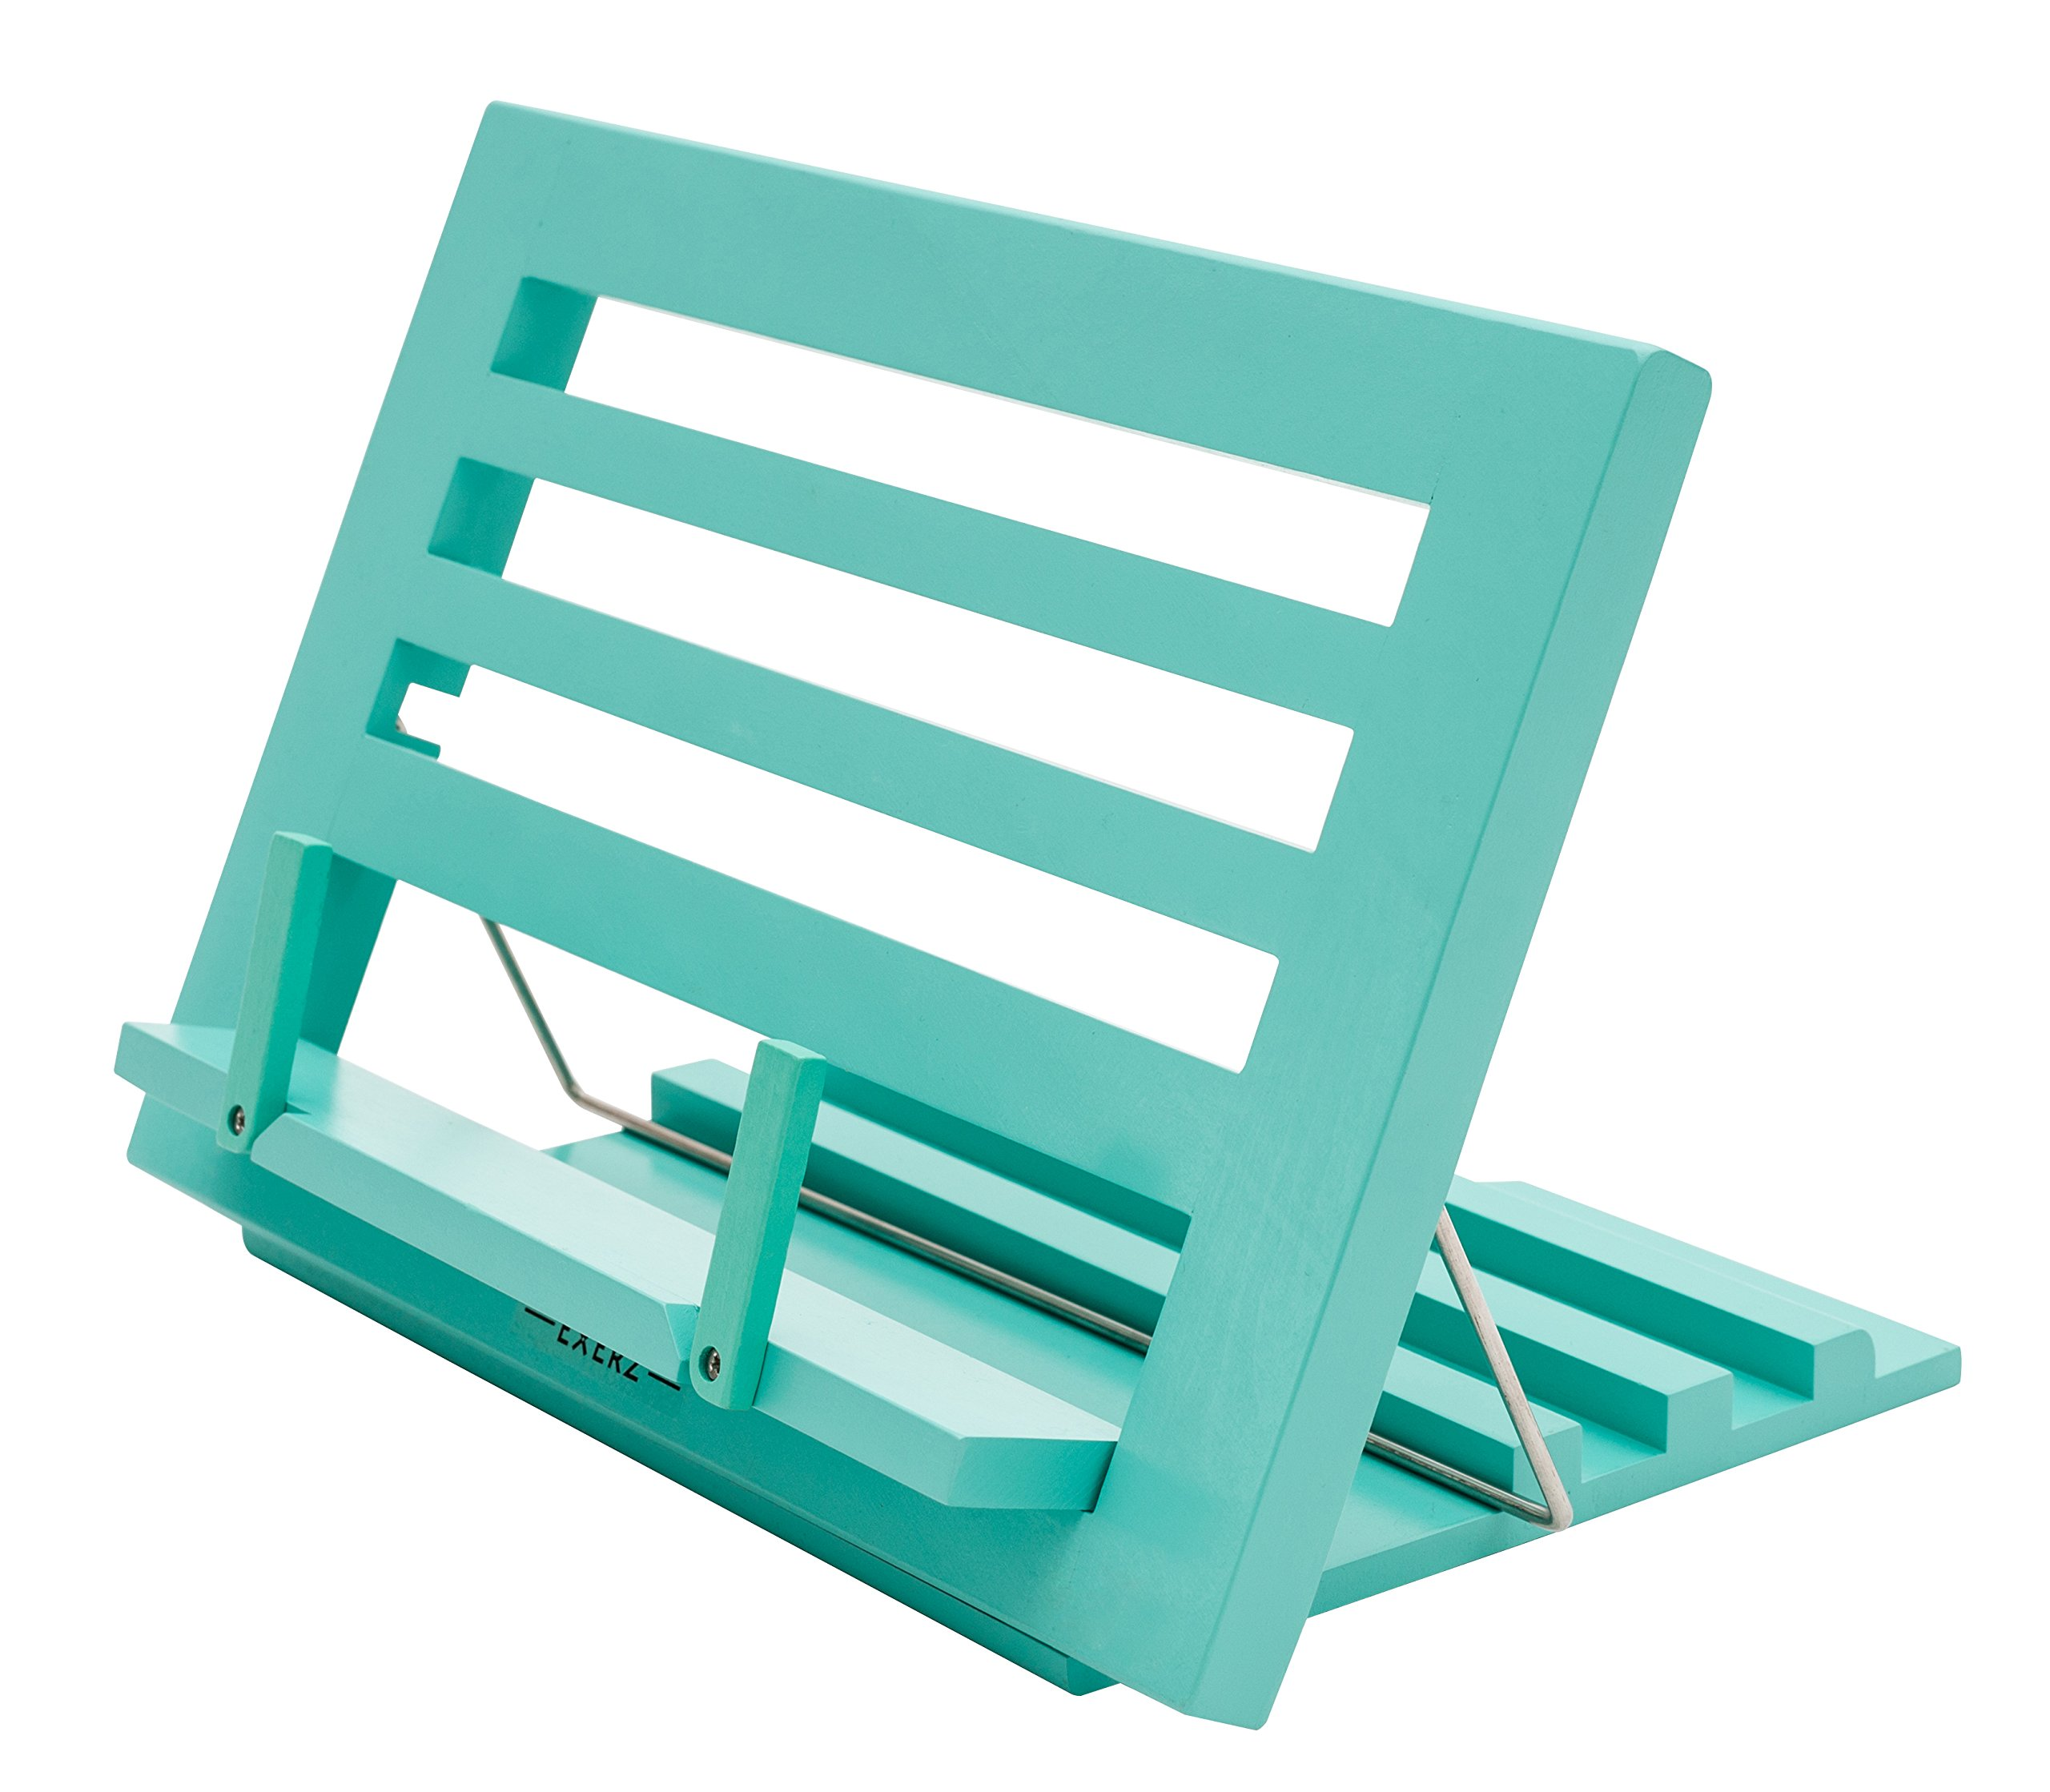 """Exerz Wooden Reading Rest Cookbook Stand Recipe Holder Bookrest Table Easel – Premium/Adjustable/Foldable/Text Book Ipad Tablet Dictionary/Natural Wood Eco Friendly – 13.5"""" x 9.5"""" x 1"""" (Blue)"""